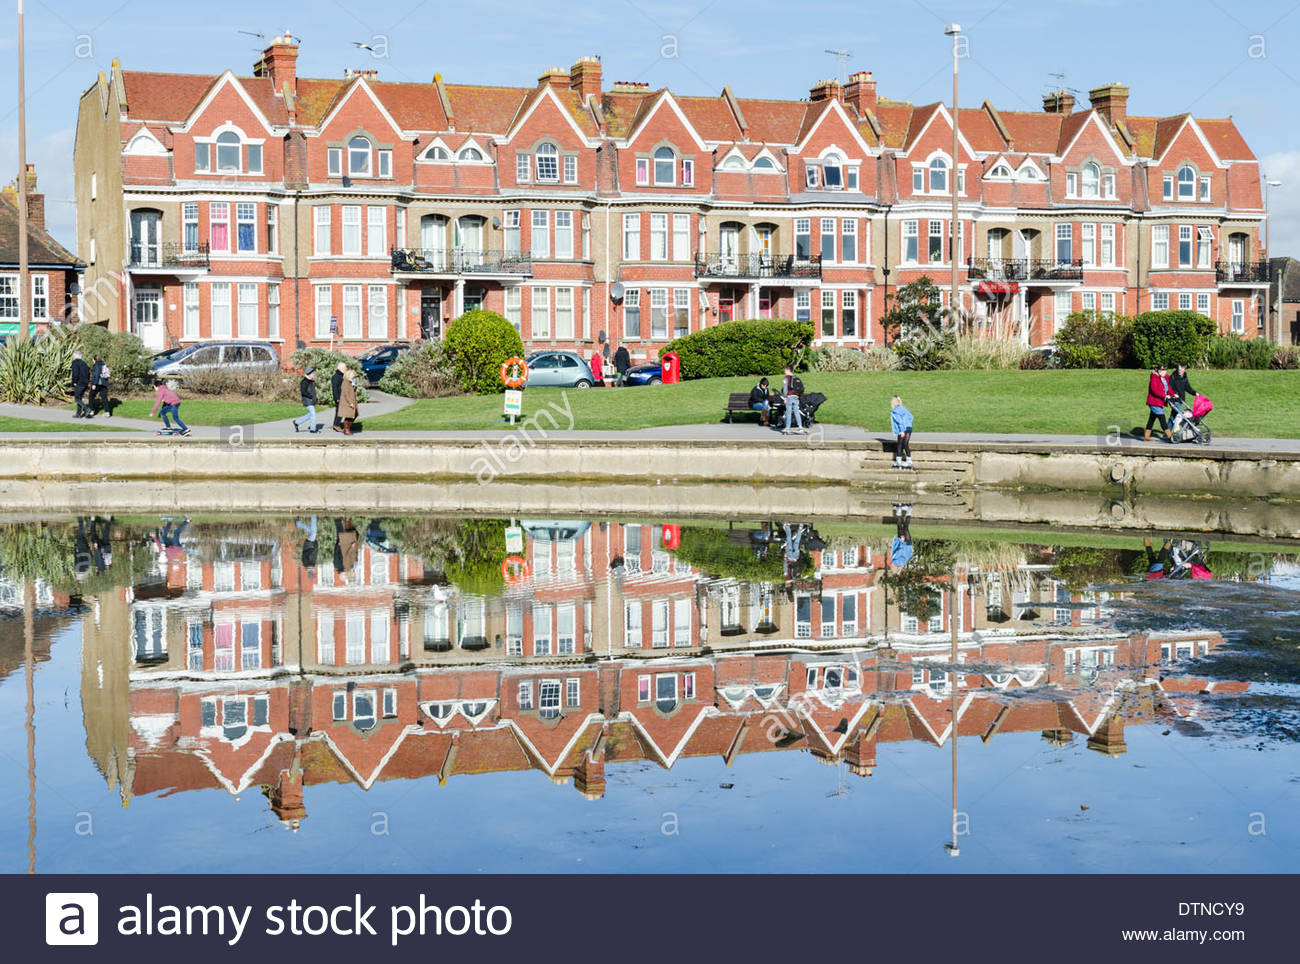 Victorian terraced houses with reflections in nearby lake. - Stock Image